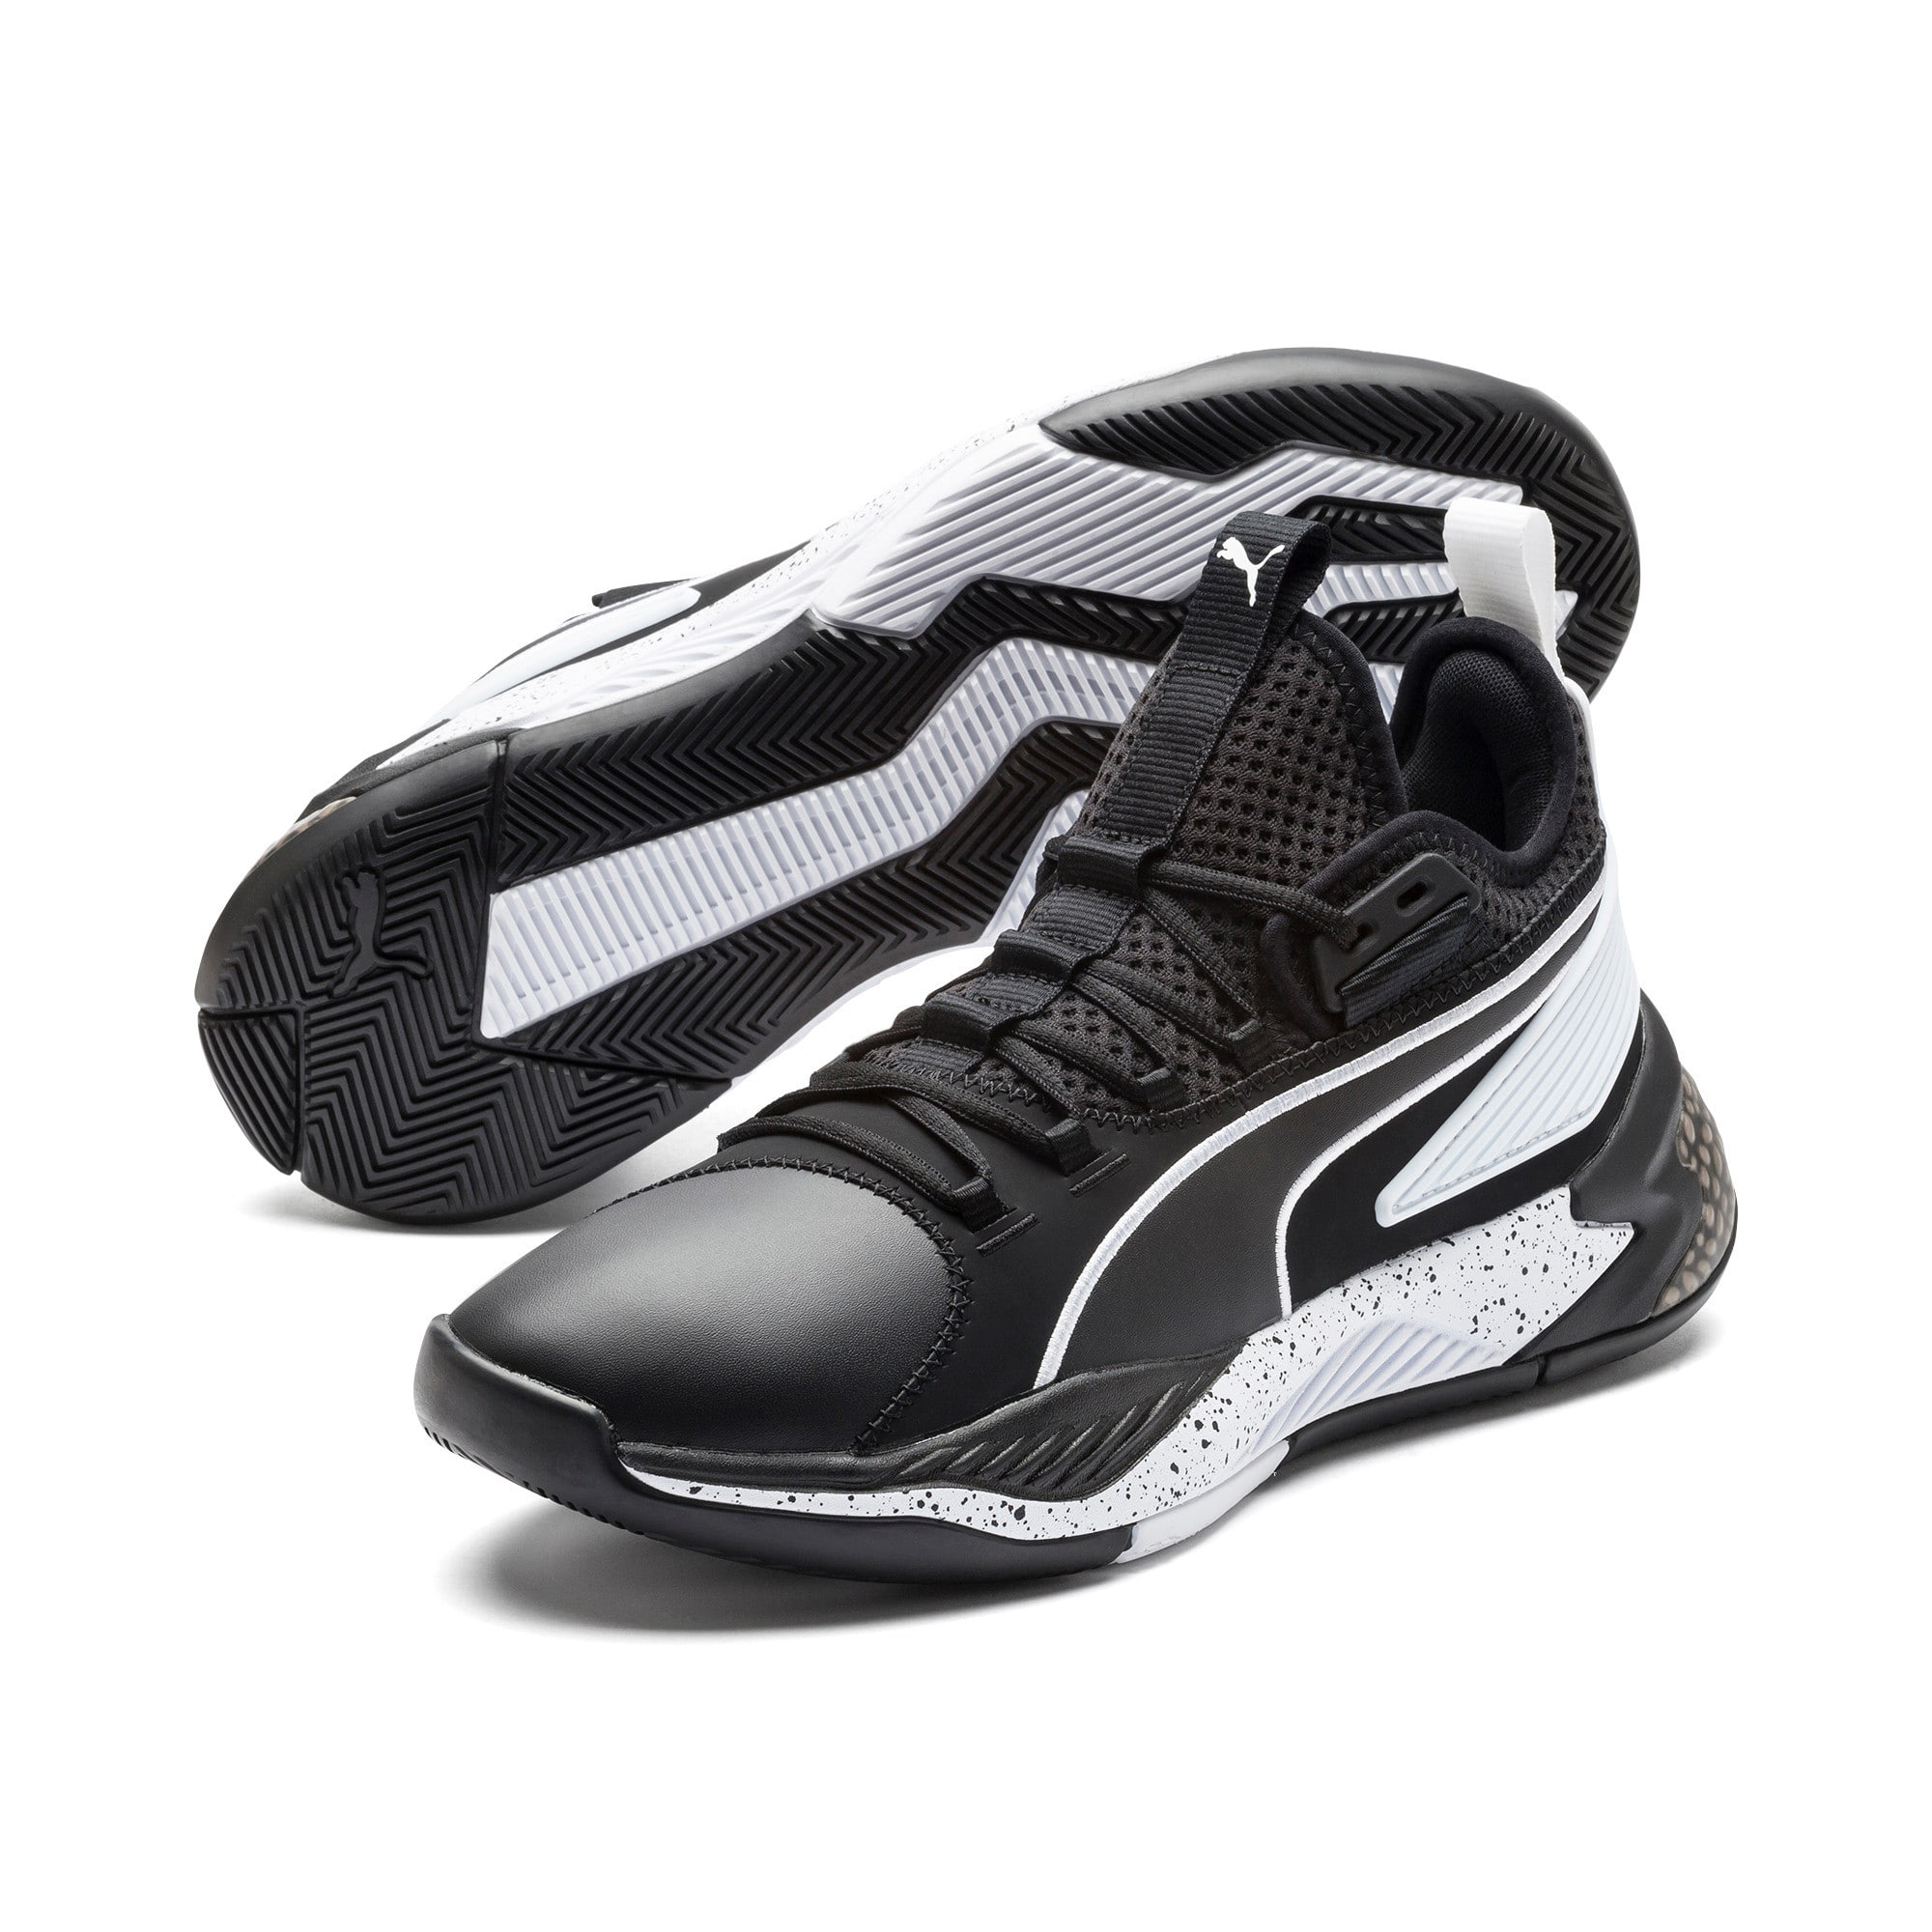 Thumbnail 2 of Uproar Core Men's Basketball Shoes, Puma Black, medium